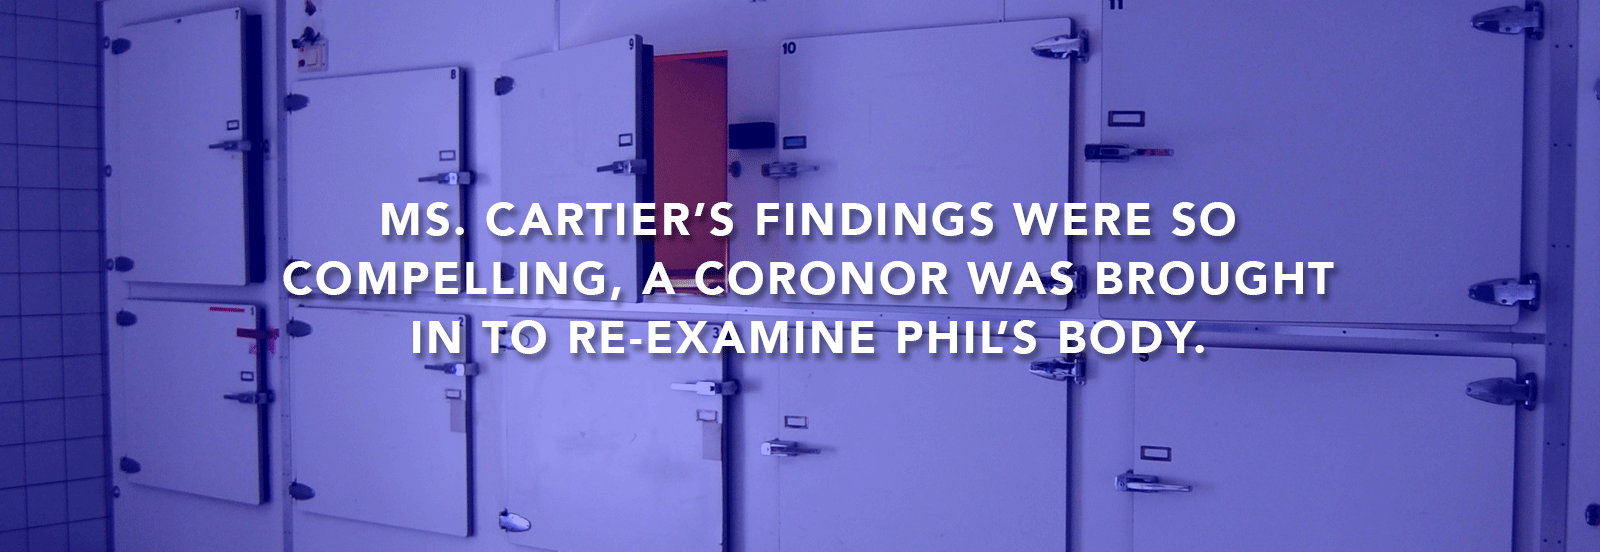 A coronor was brought in to re-examine the body